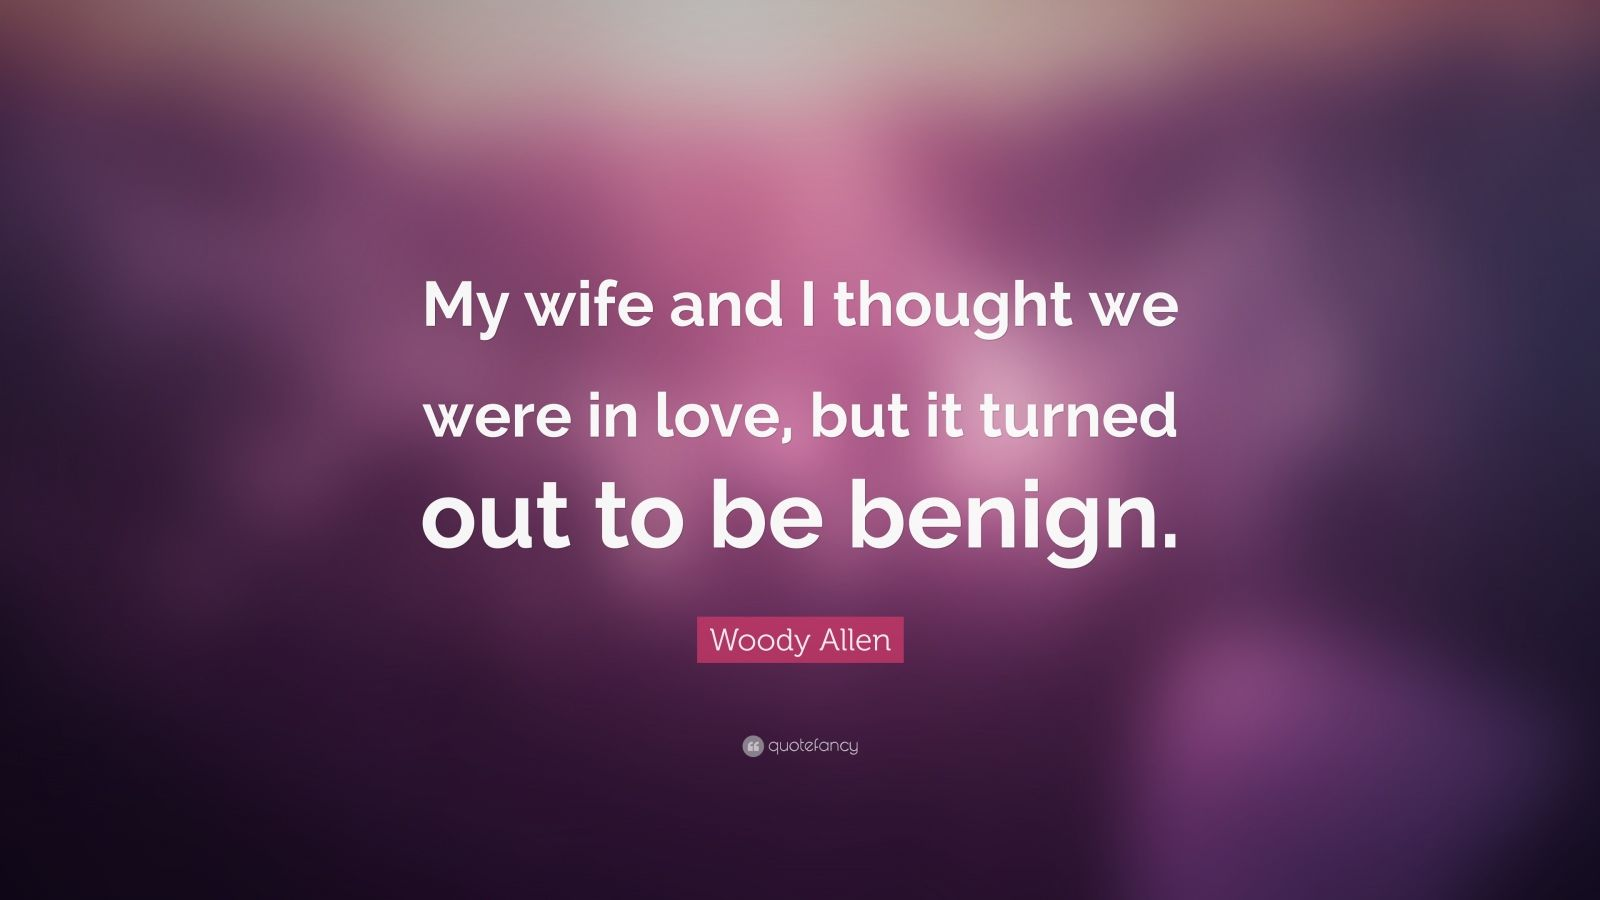 """Woody Allen Quote: """"My wife and I thought we were in love, but it turned out to be benign."""""""